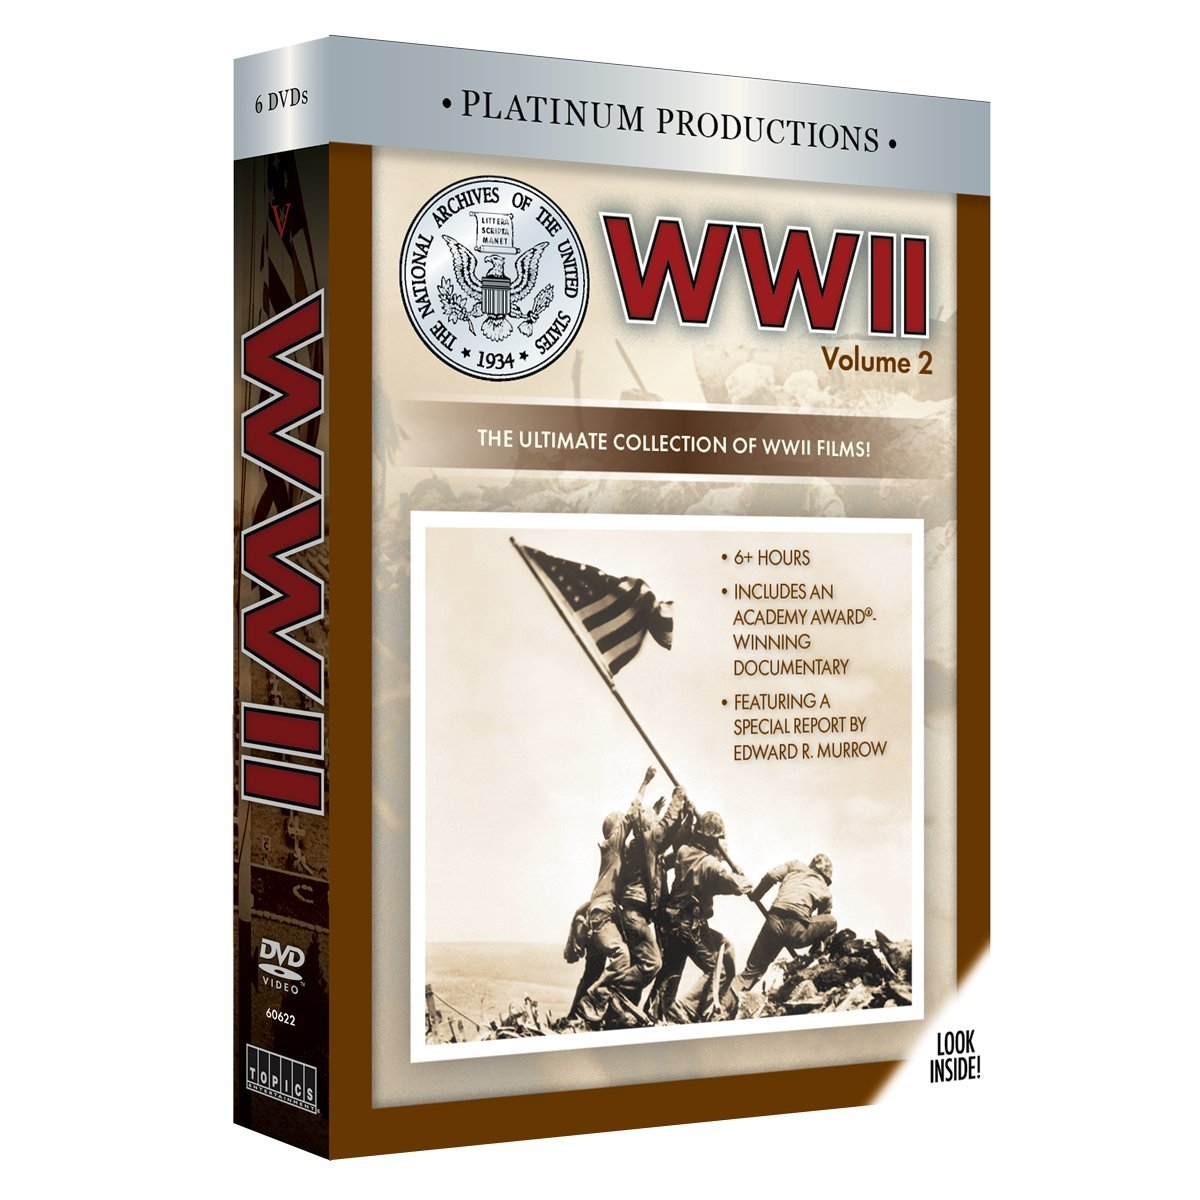 WWII: The Essential Collection (Volume 2)